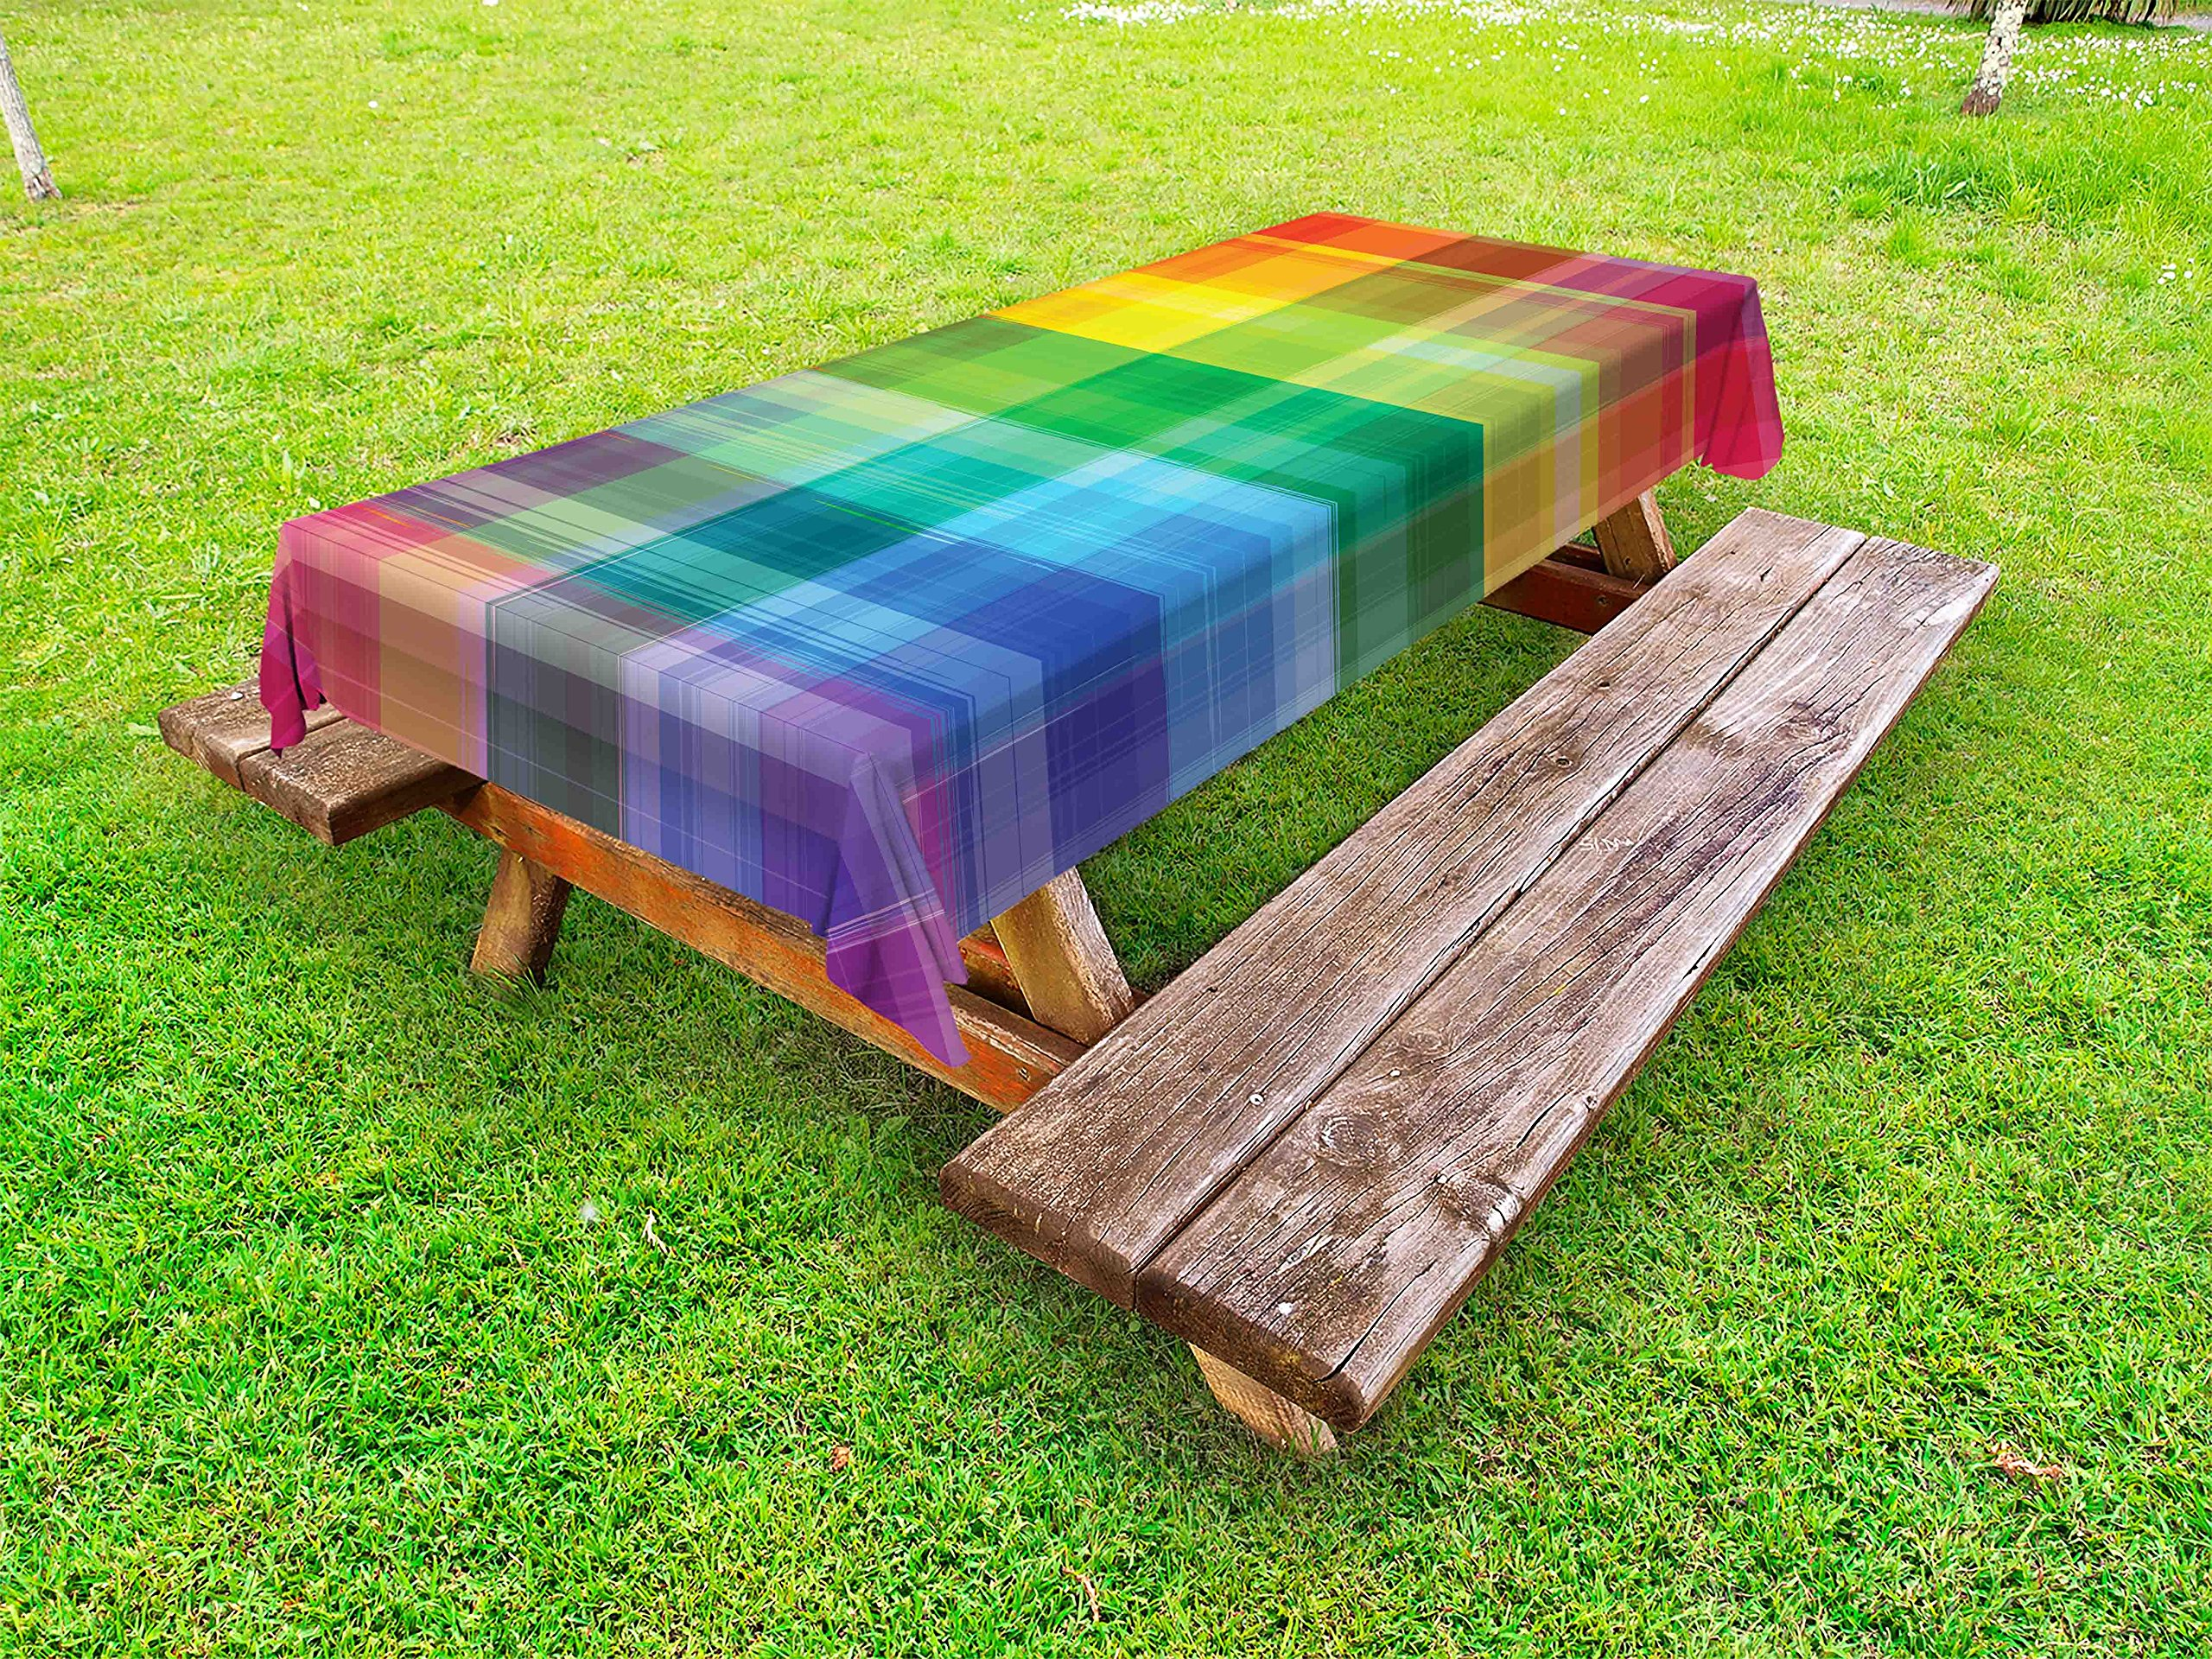 Ambesonne Vintage Rainbow Outdoor Tablecloth, Retro Plaid Design Checkered Squares Rainbow Colored Geometric Pattern, Decorative Washable Picnic Table Cloth, 58 X 84 Inches, Multicolor